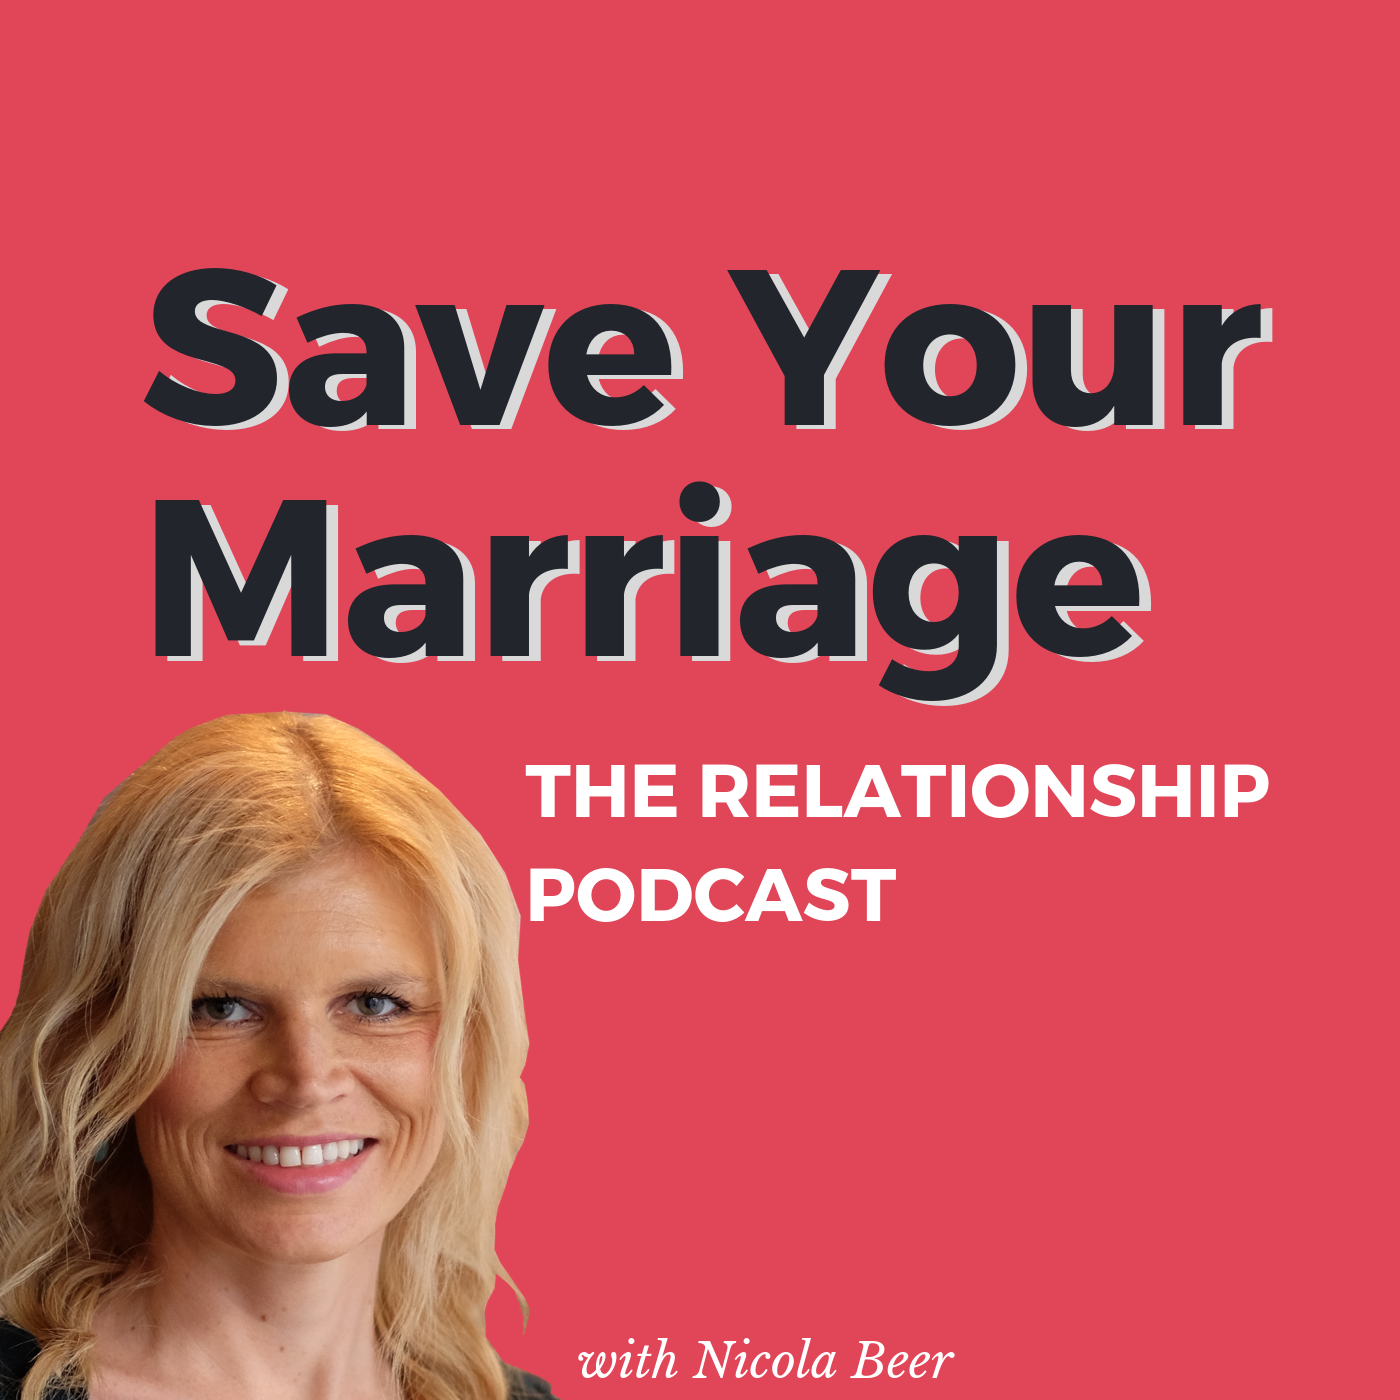 Save Your Marriage - The Relationship Podcast with Nicola Beer